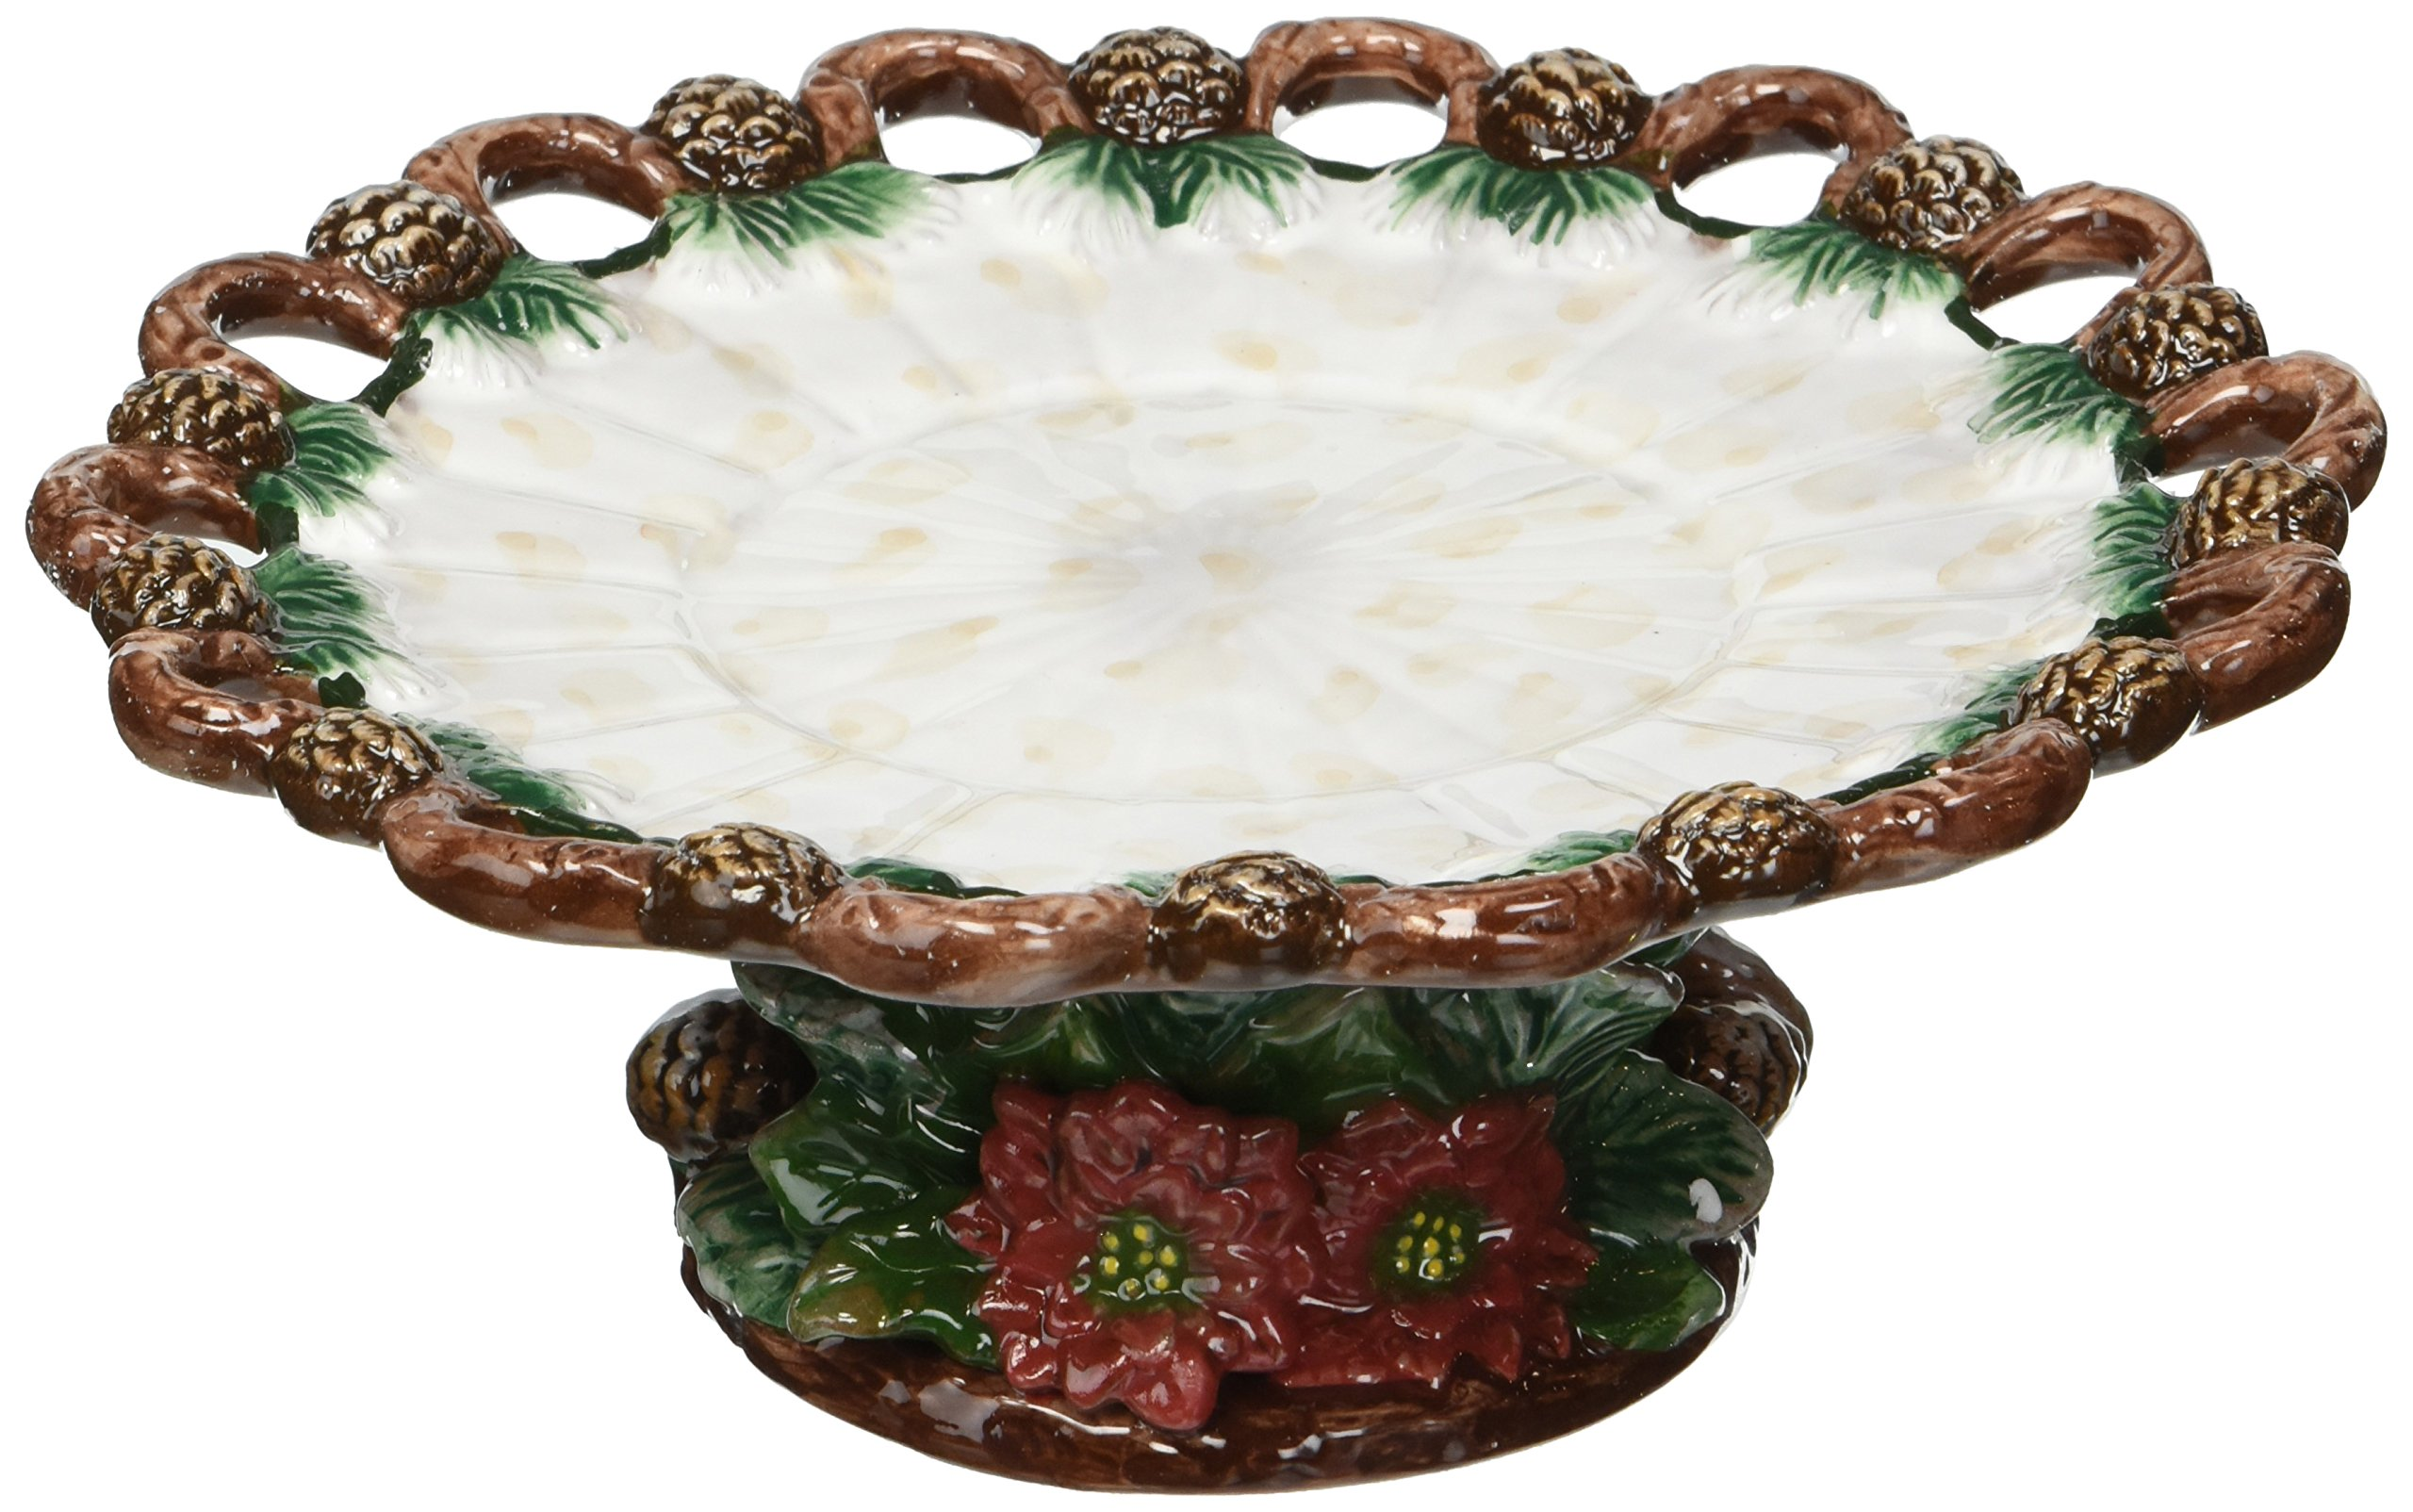 ATD 33421 7'' Festive Christmas Themed Candle Holder Plate